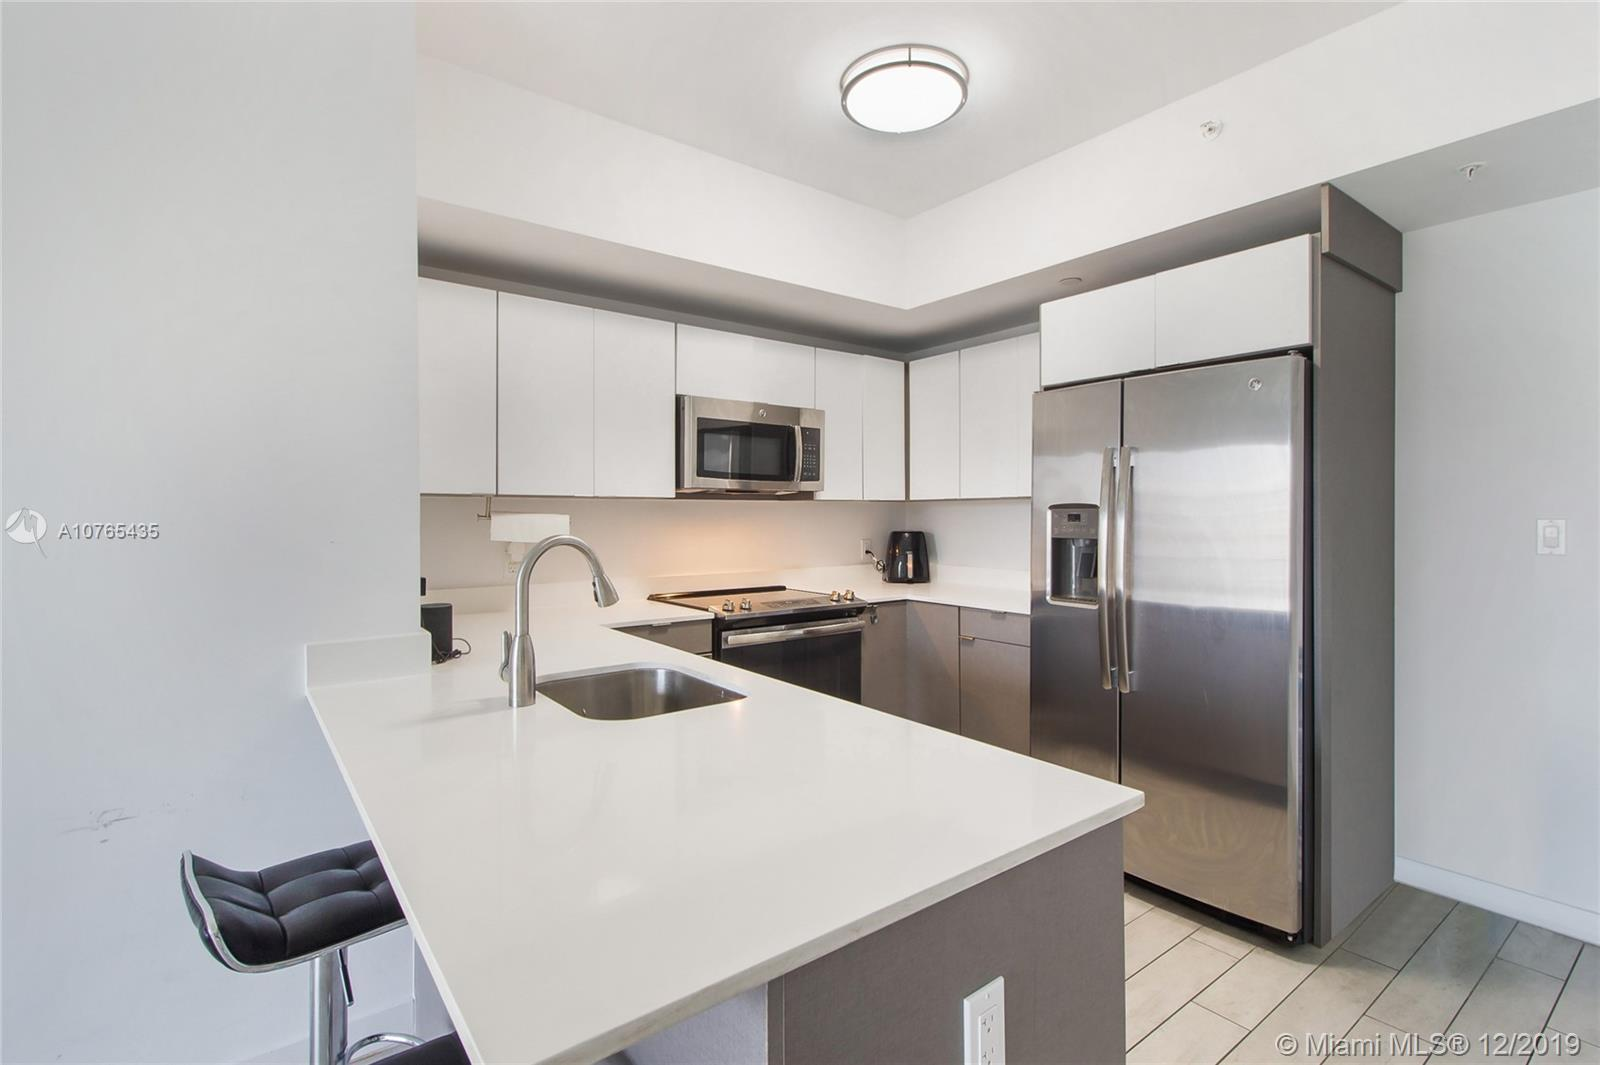 **GREAT INVESTOR OPPORTUNITY**Unit is rented for $1,950 a month until FEB 2022! Low Maintenance Fee!